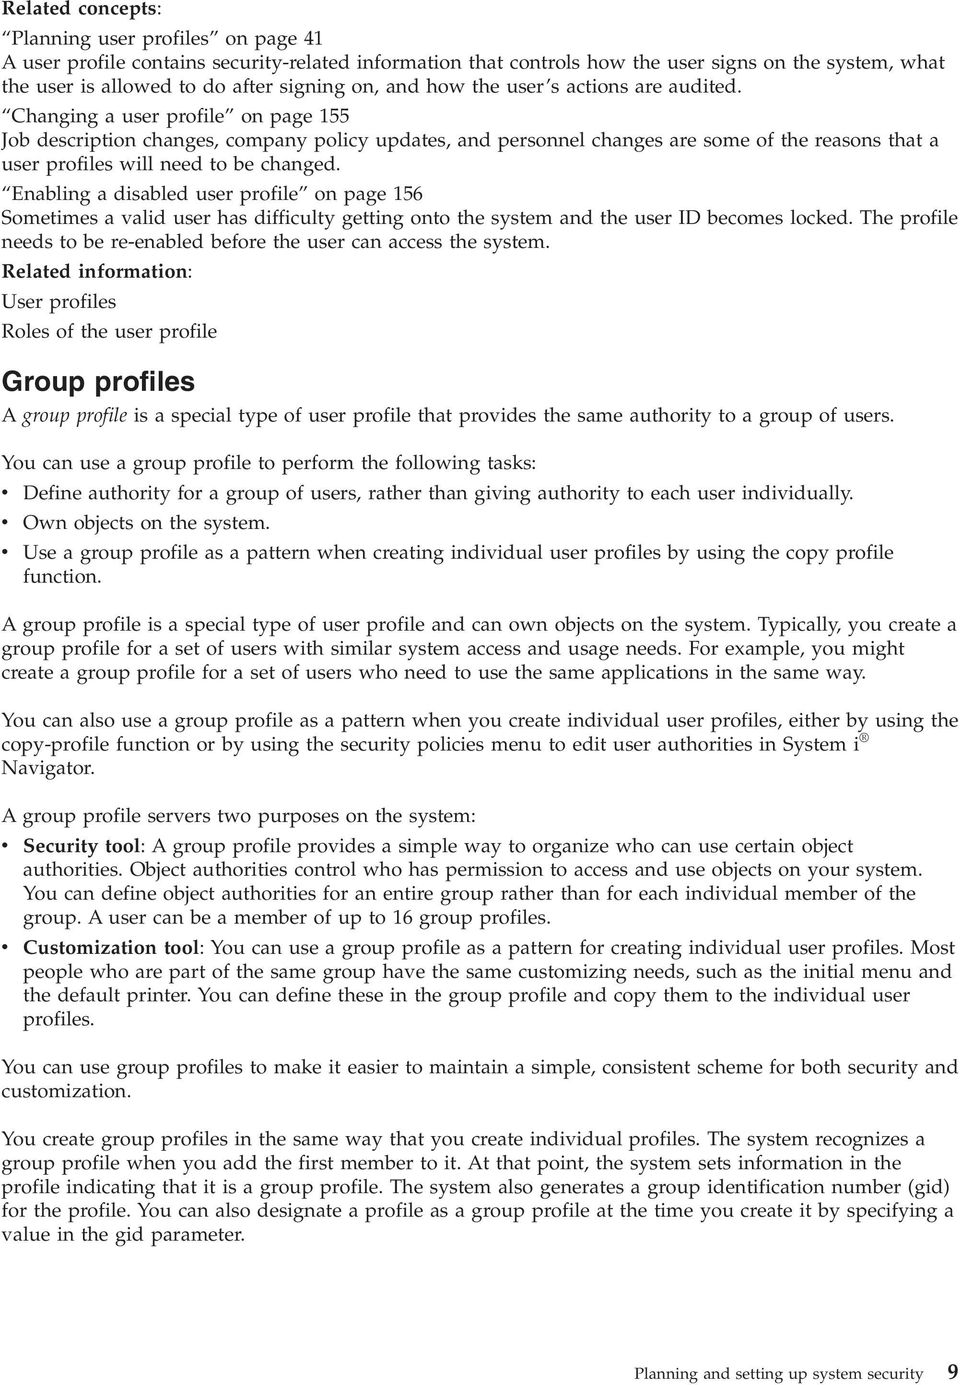 Changing a user profile on page 155 Job description changes, company policy updates, and personnel changes are some of the reasons that a user profiles will need to be changed.